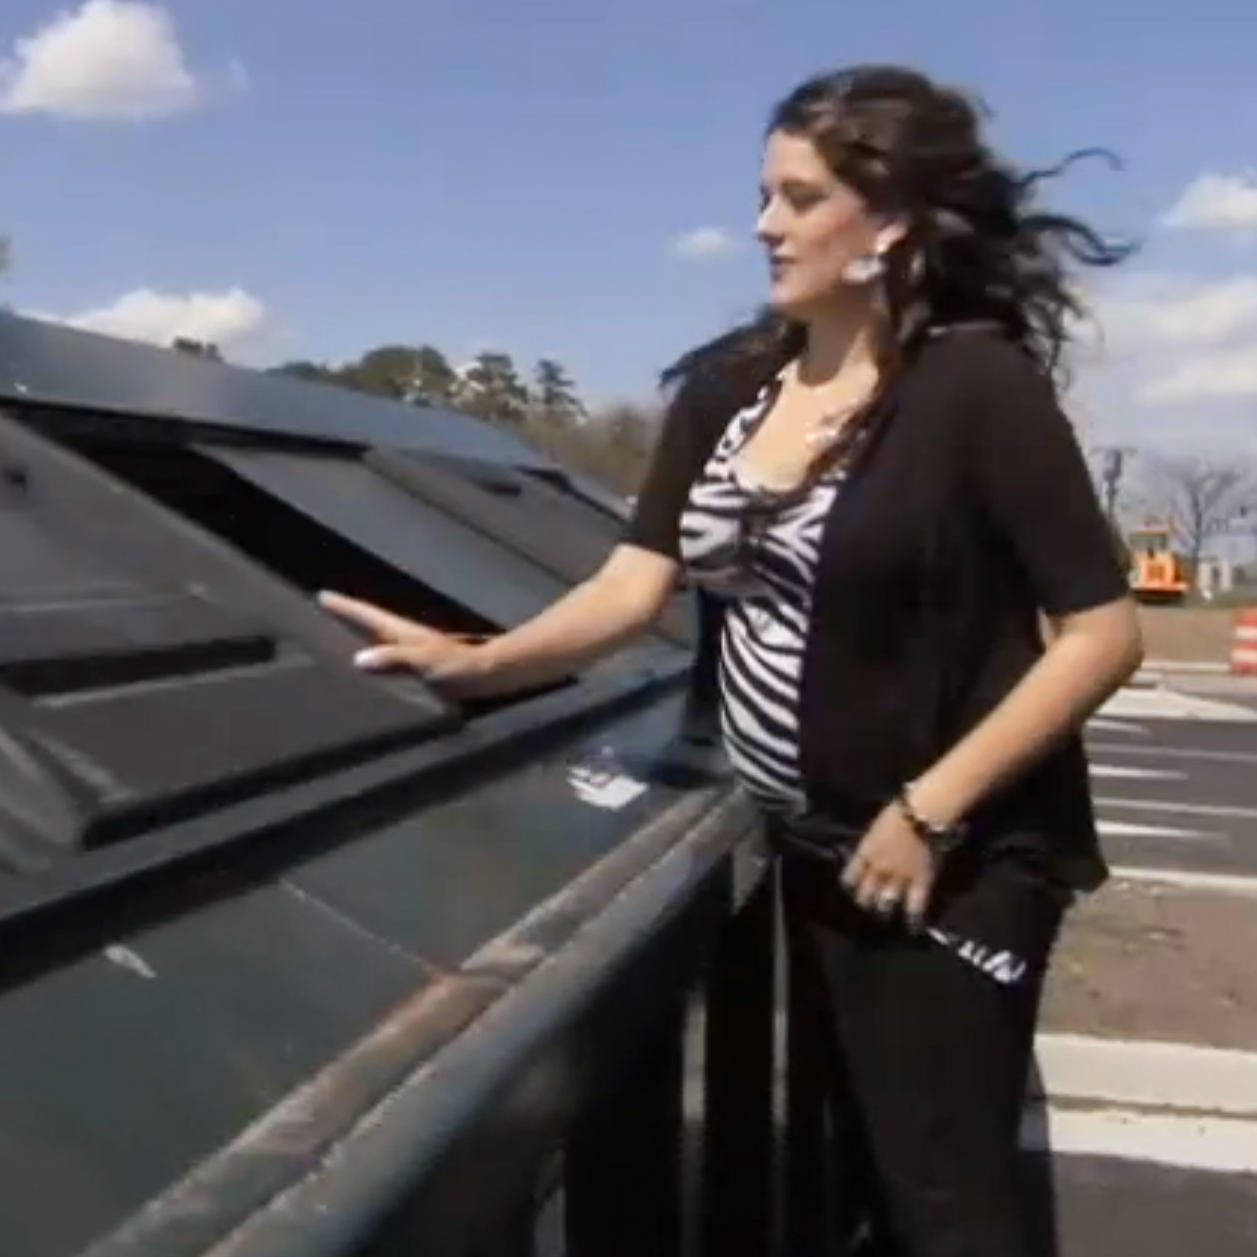 Pregnant and Dumpster Diving